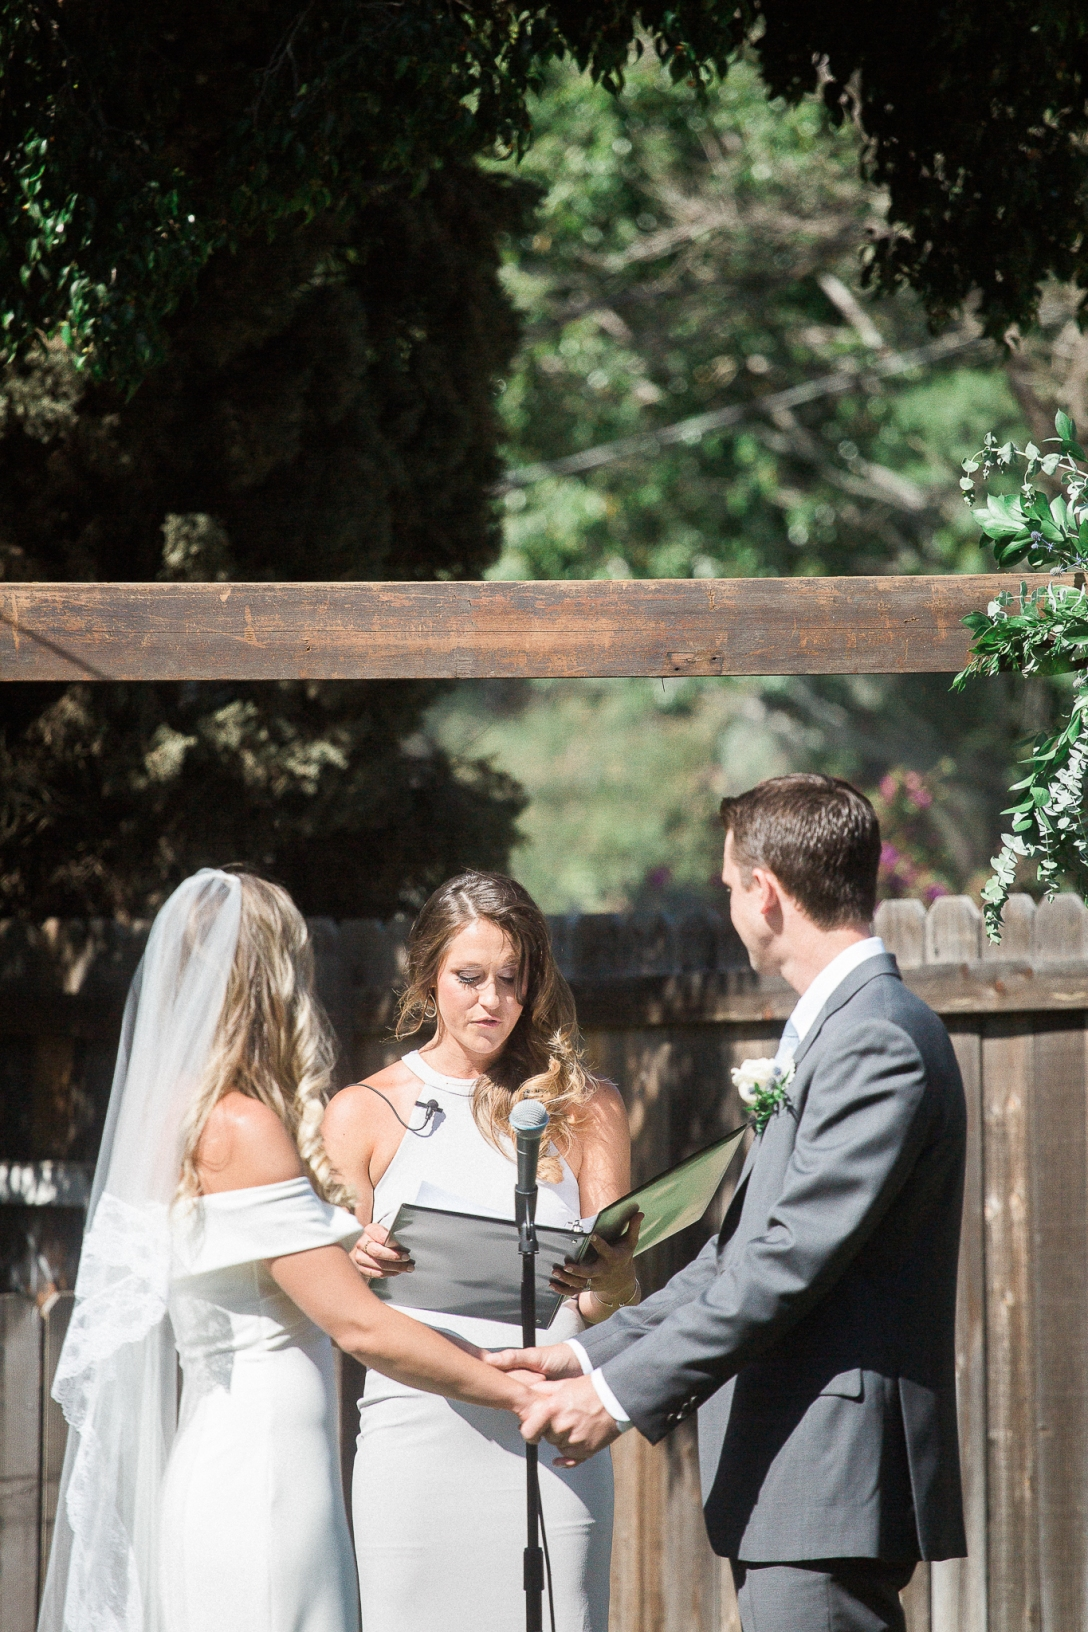 Katy-Steve-Wedding-Tustin-California-46